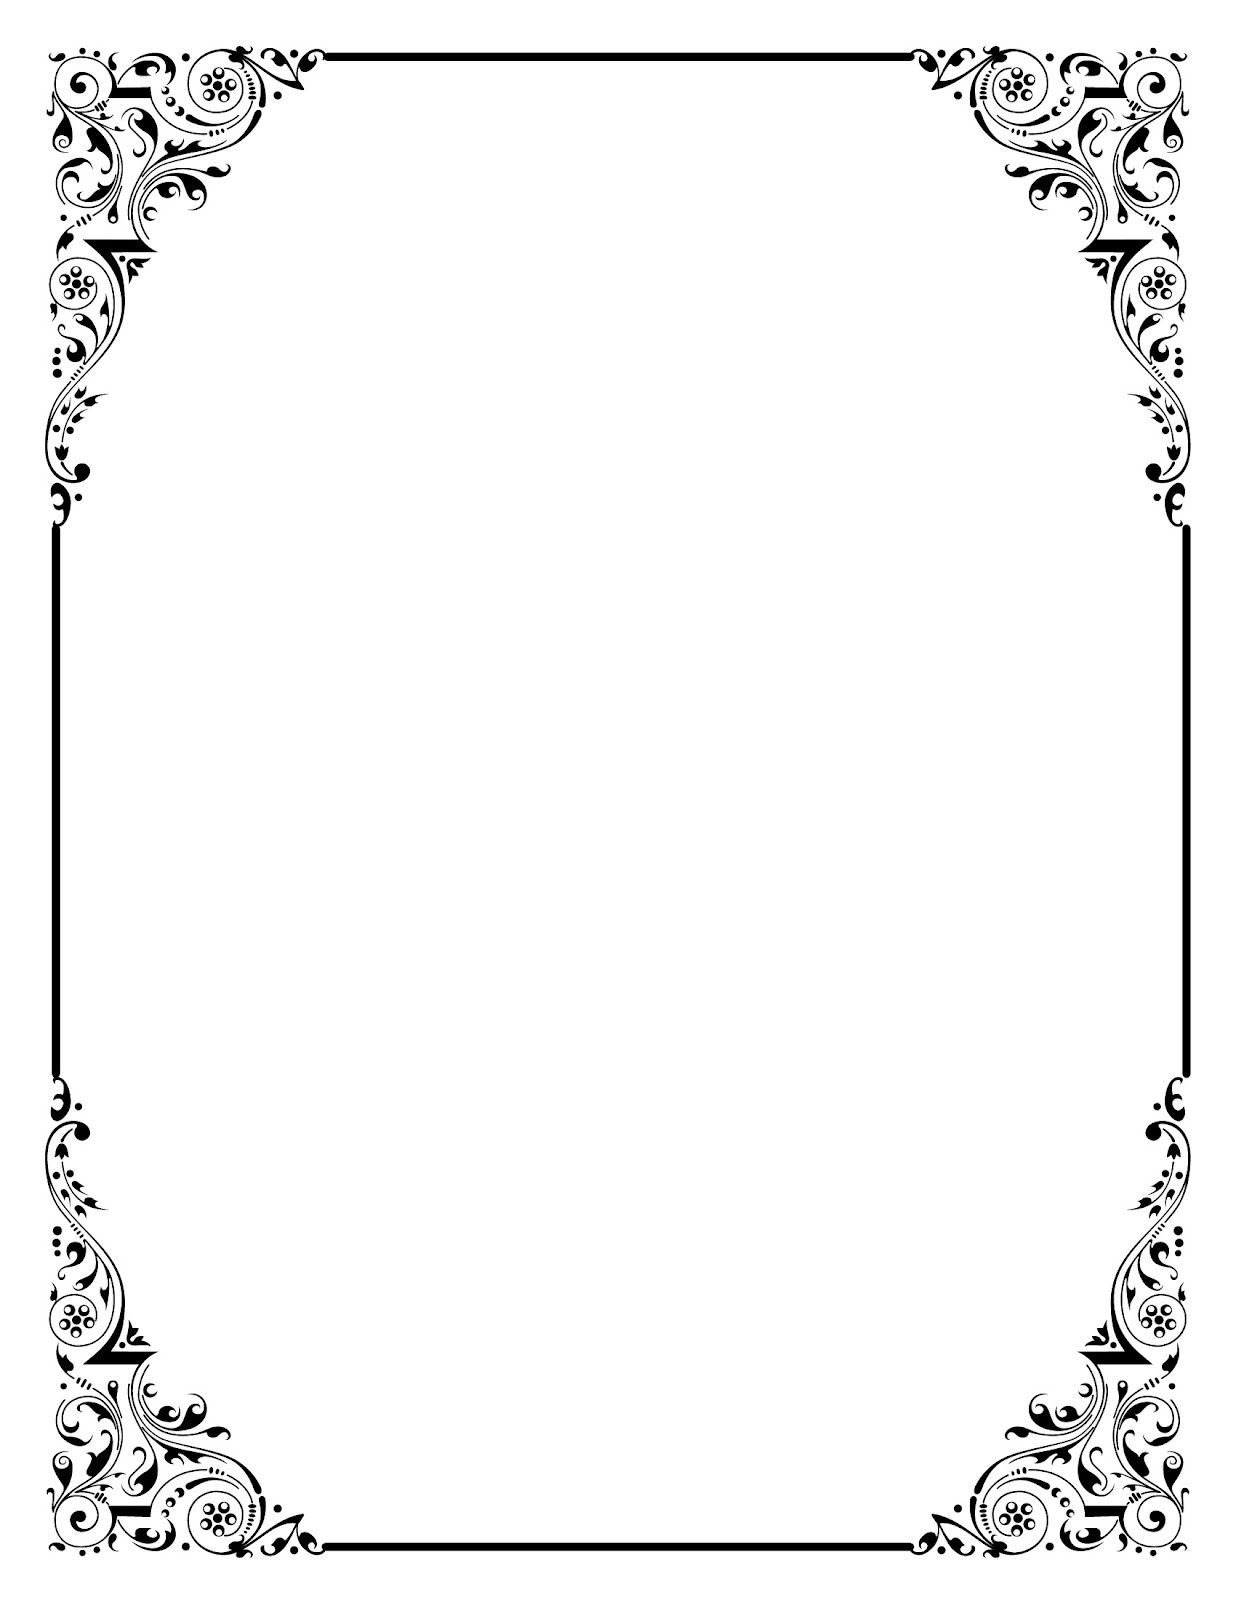 You Can Use This Beautiful Vintage Clip Art Frames In Your